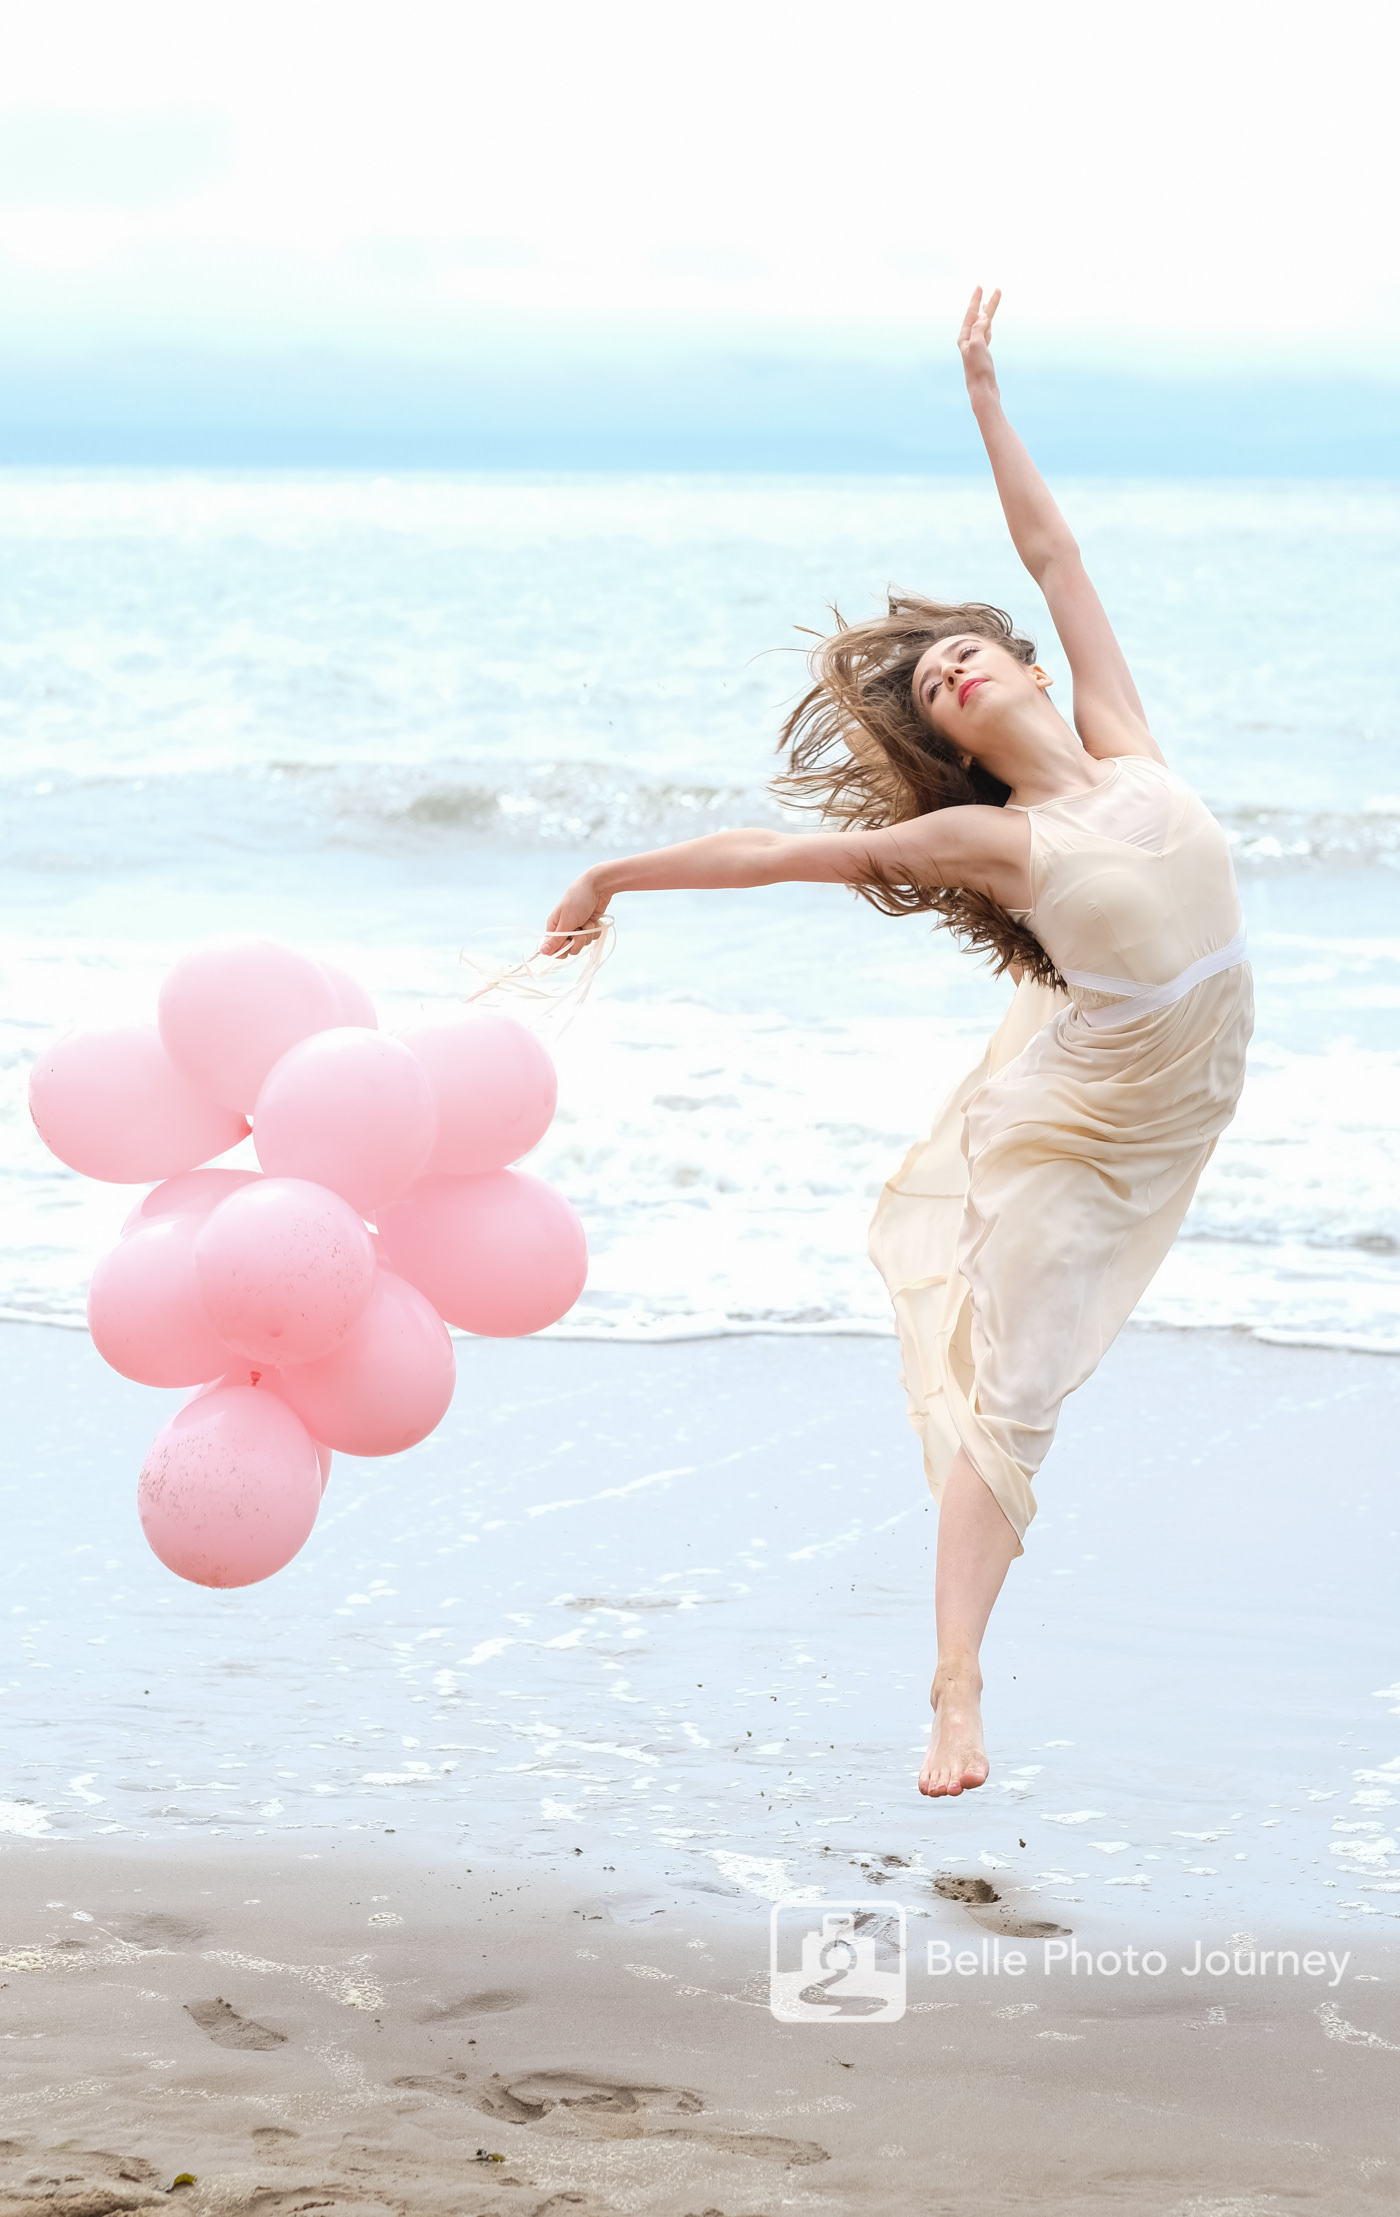 ballerina portrait jumping on the beach with balloons